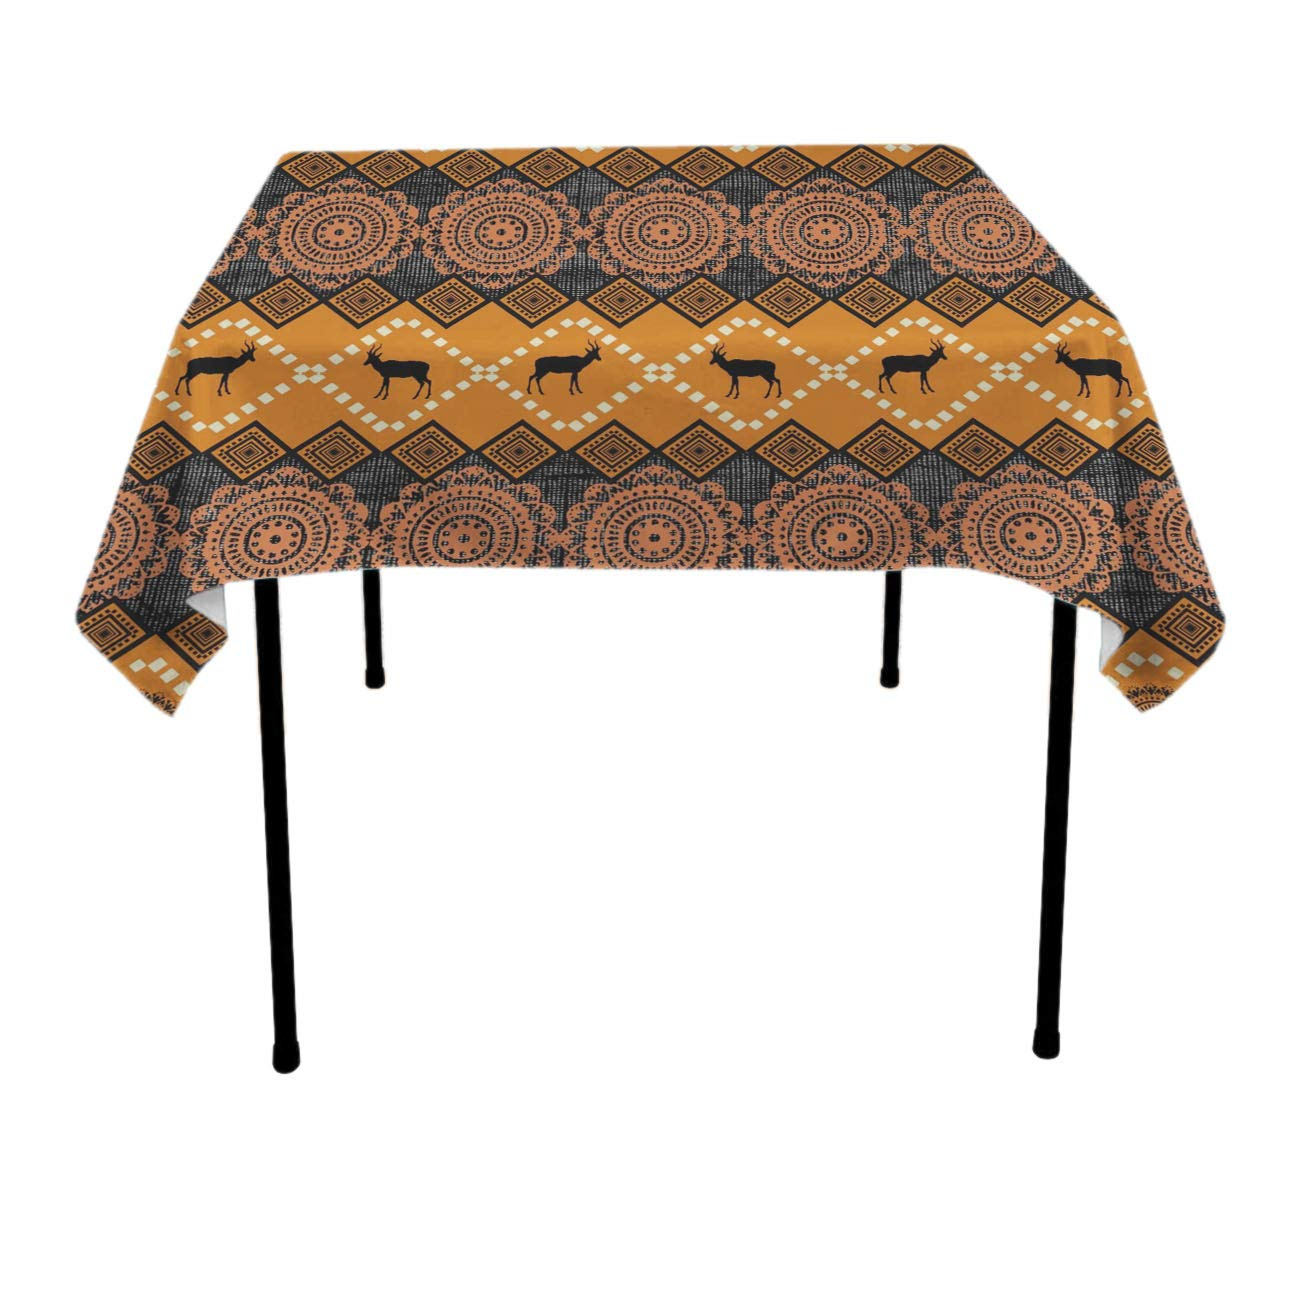 Jinkela Square Table Cloth (36 x 36 Inches), East African Patterns - Perfect for Spring, Summer, Holidays - Christmas and for Everyday Use